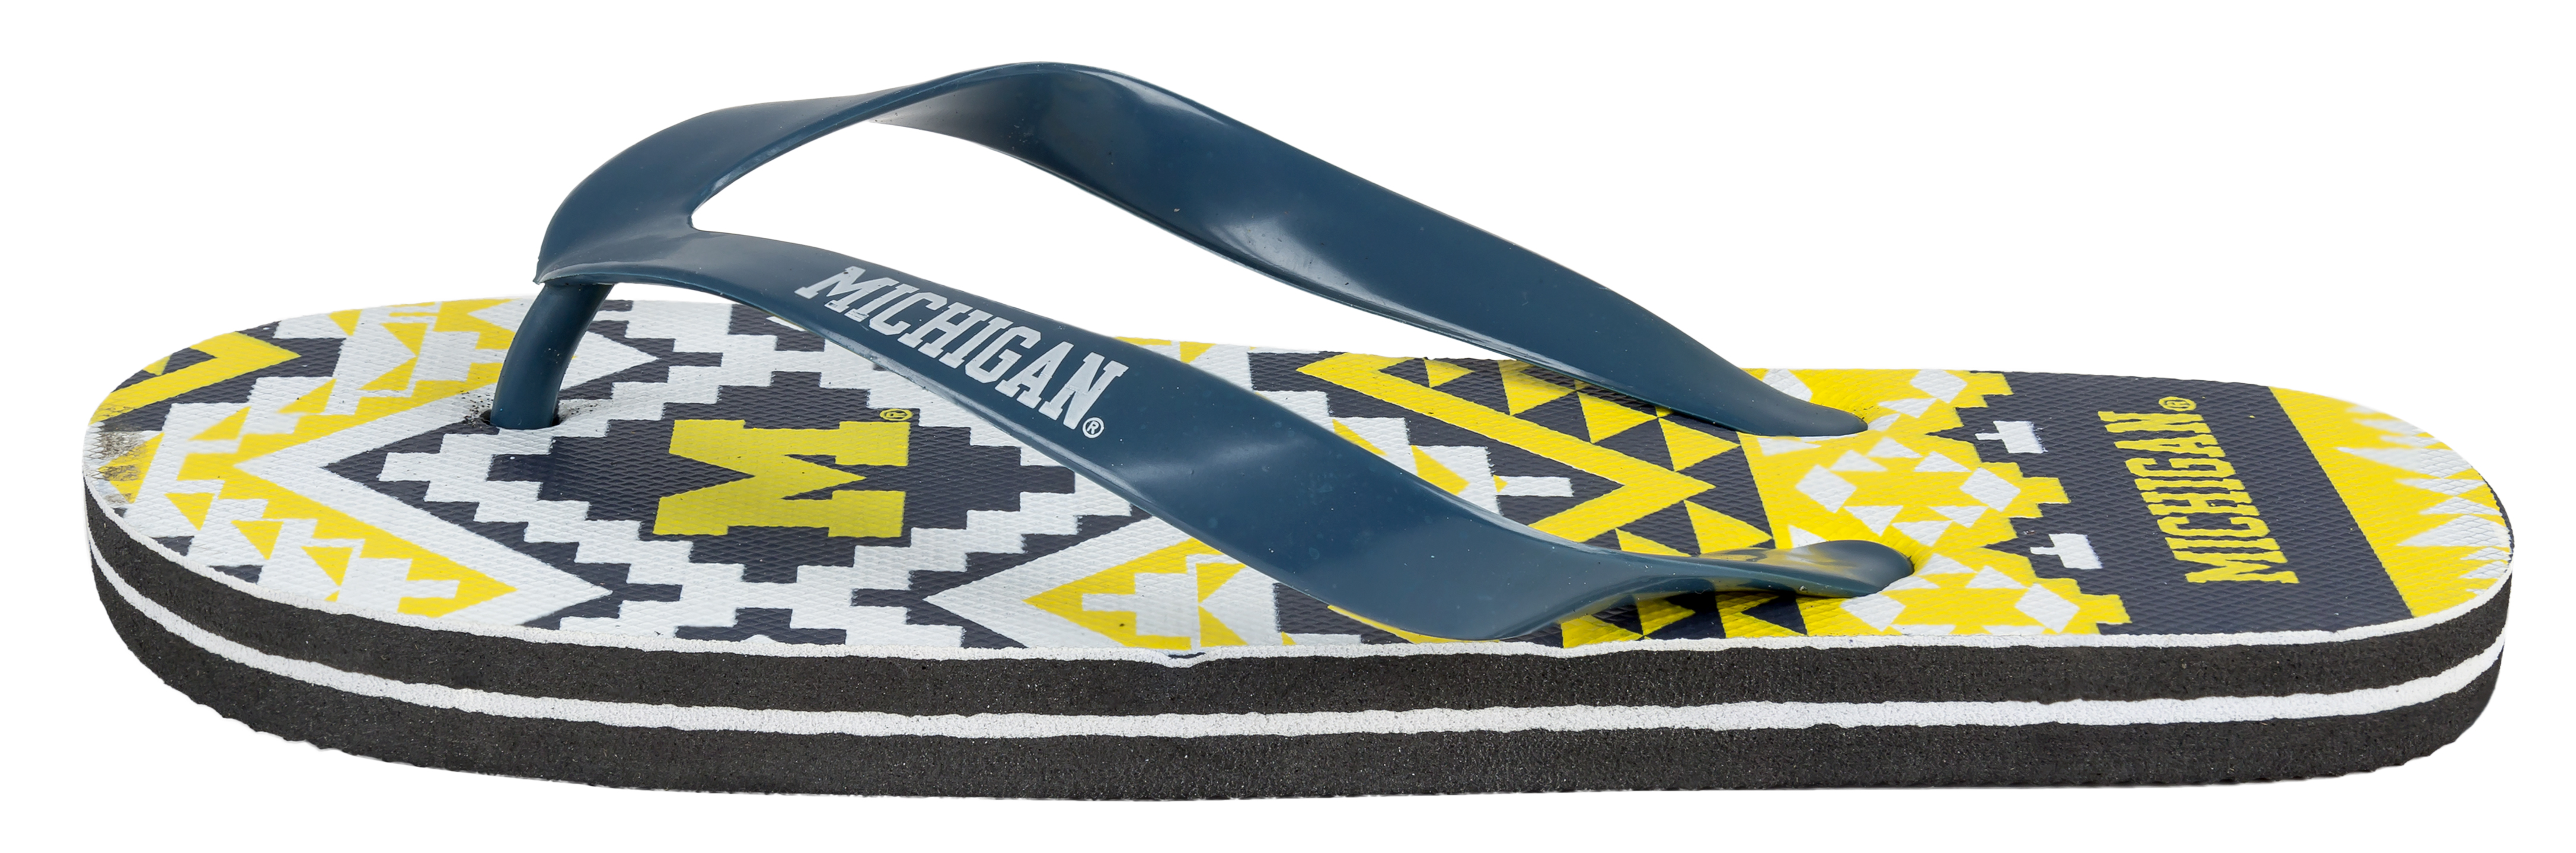 College Flip - Flop Womens Aztec Size Small Pick Team - University of Michigan